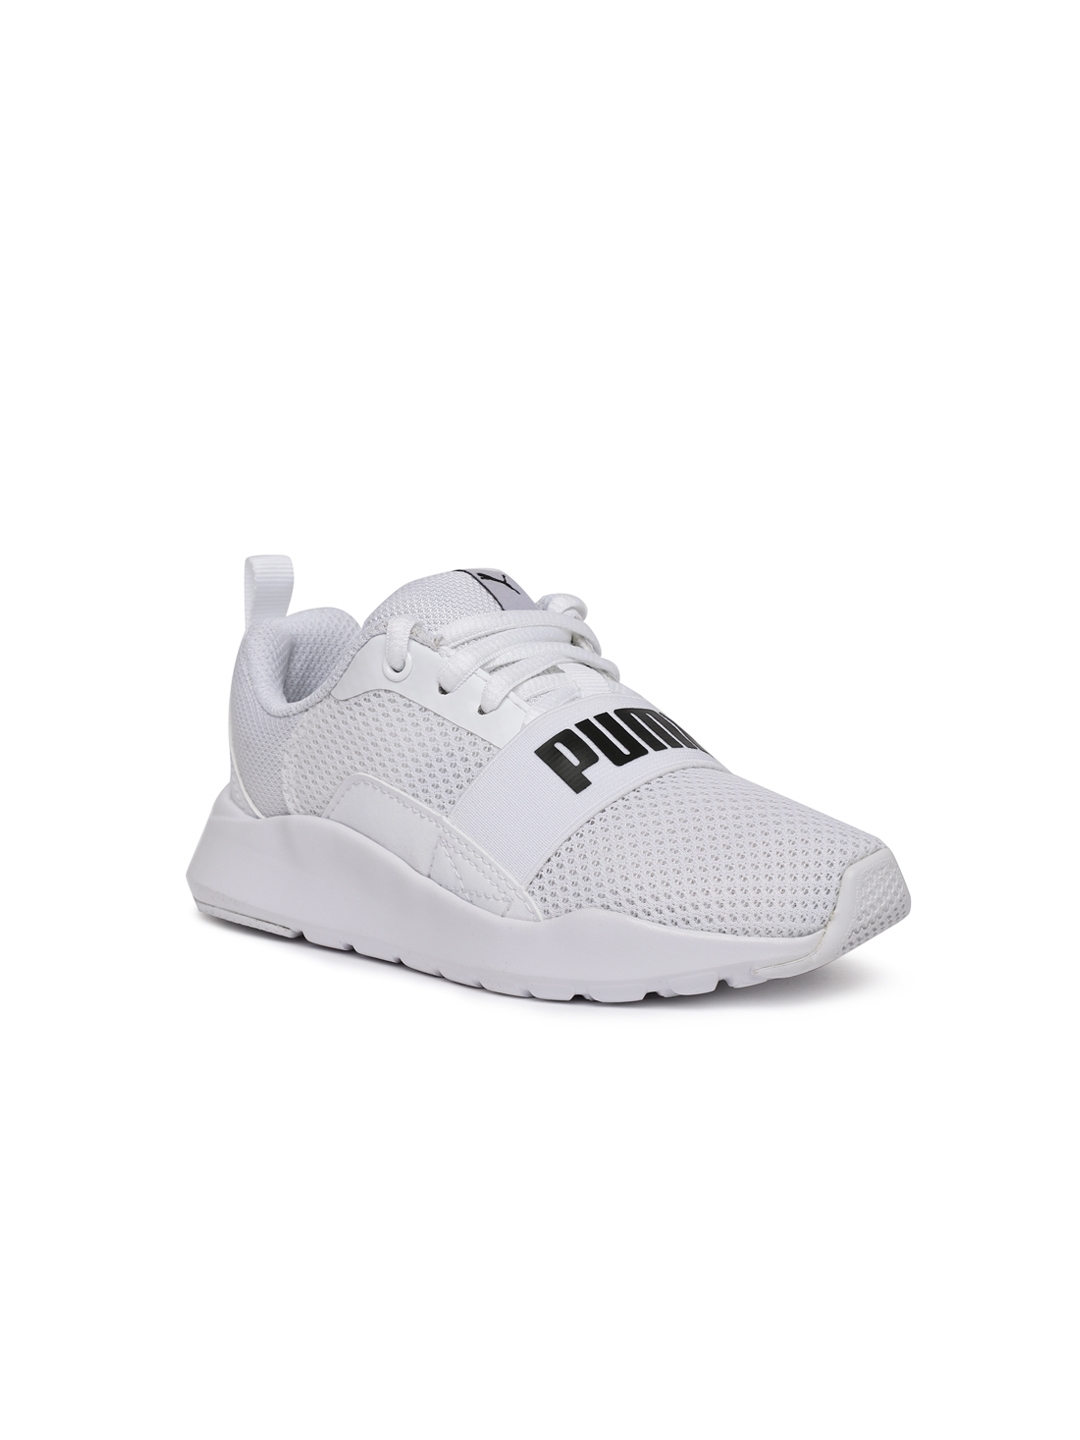 eebb1964a581 Buy Puma Unisex White Wired PS Sneakers - Casual Shoes for Unisex ...